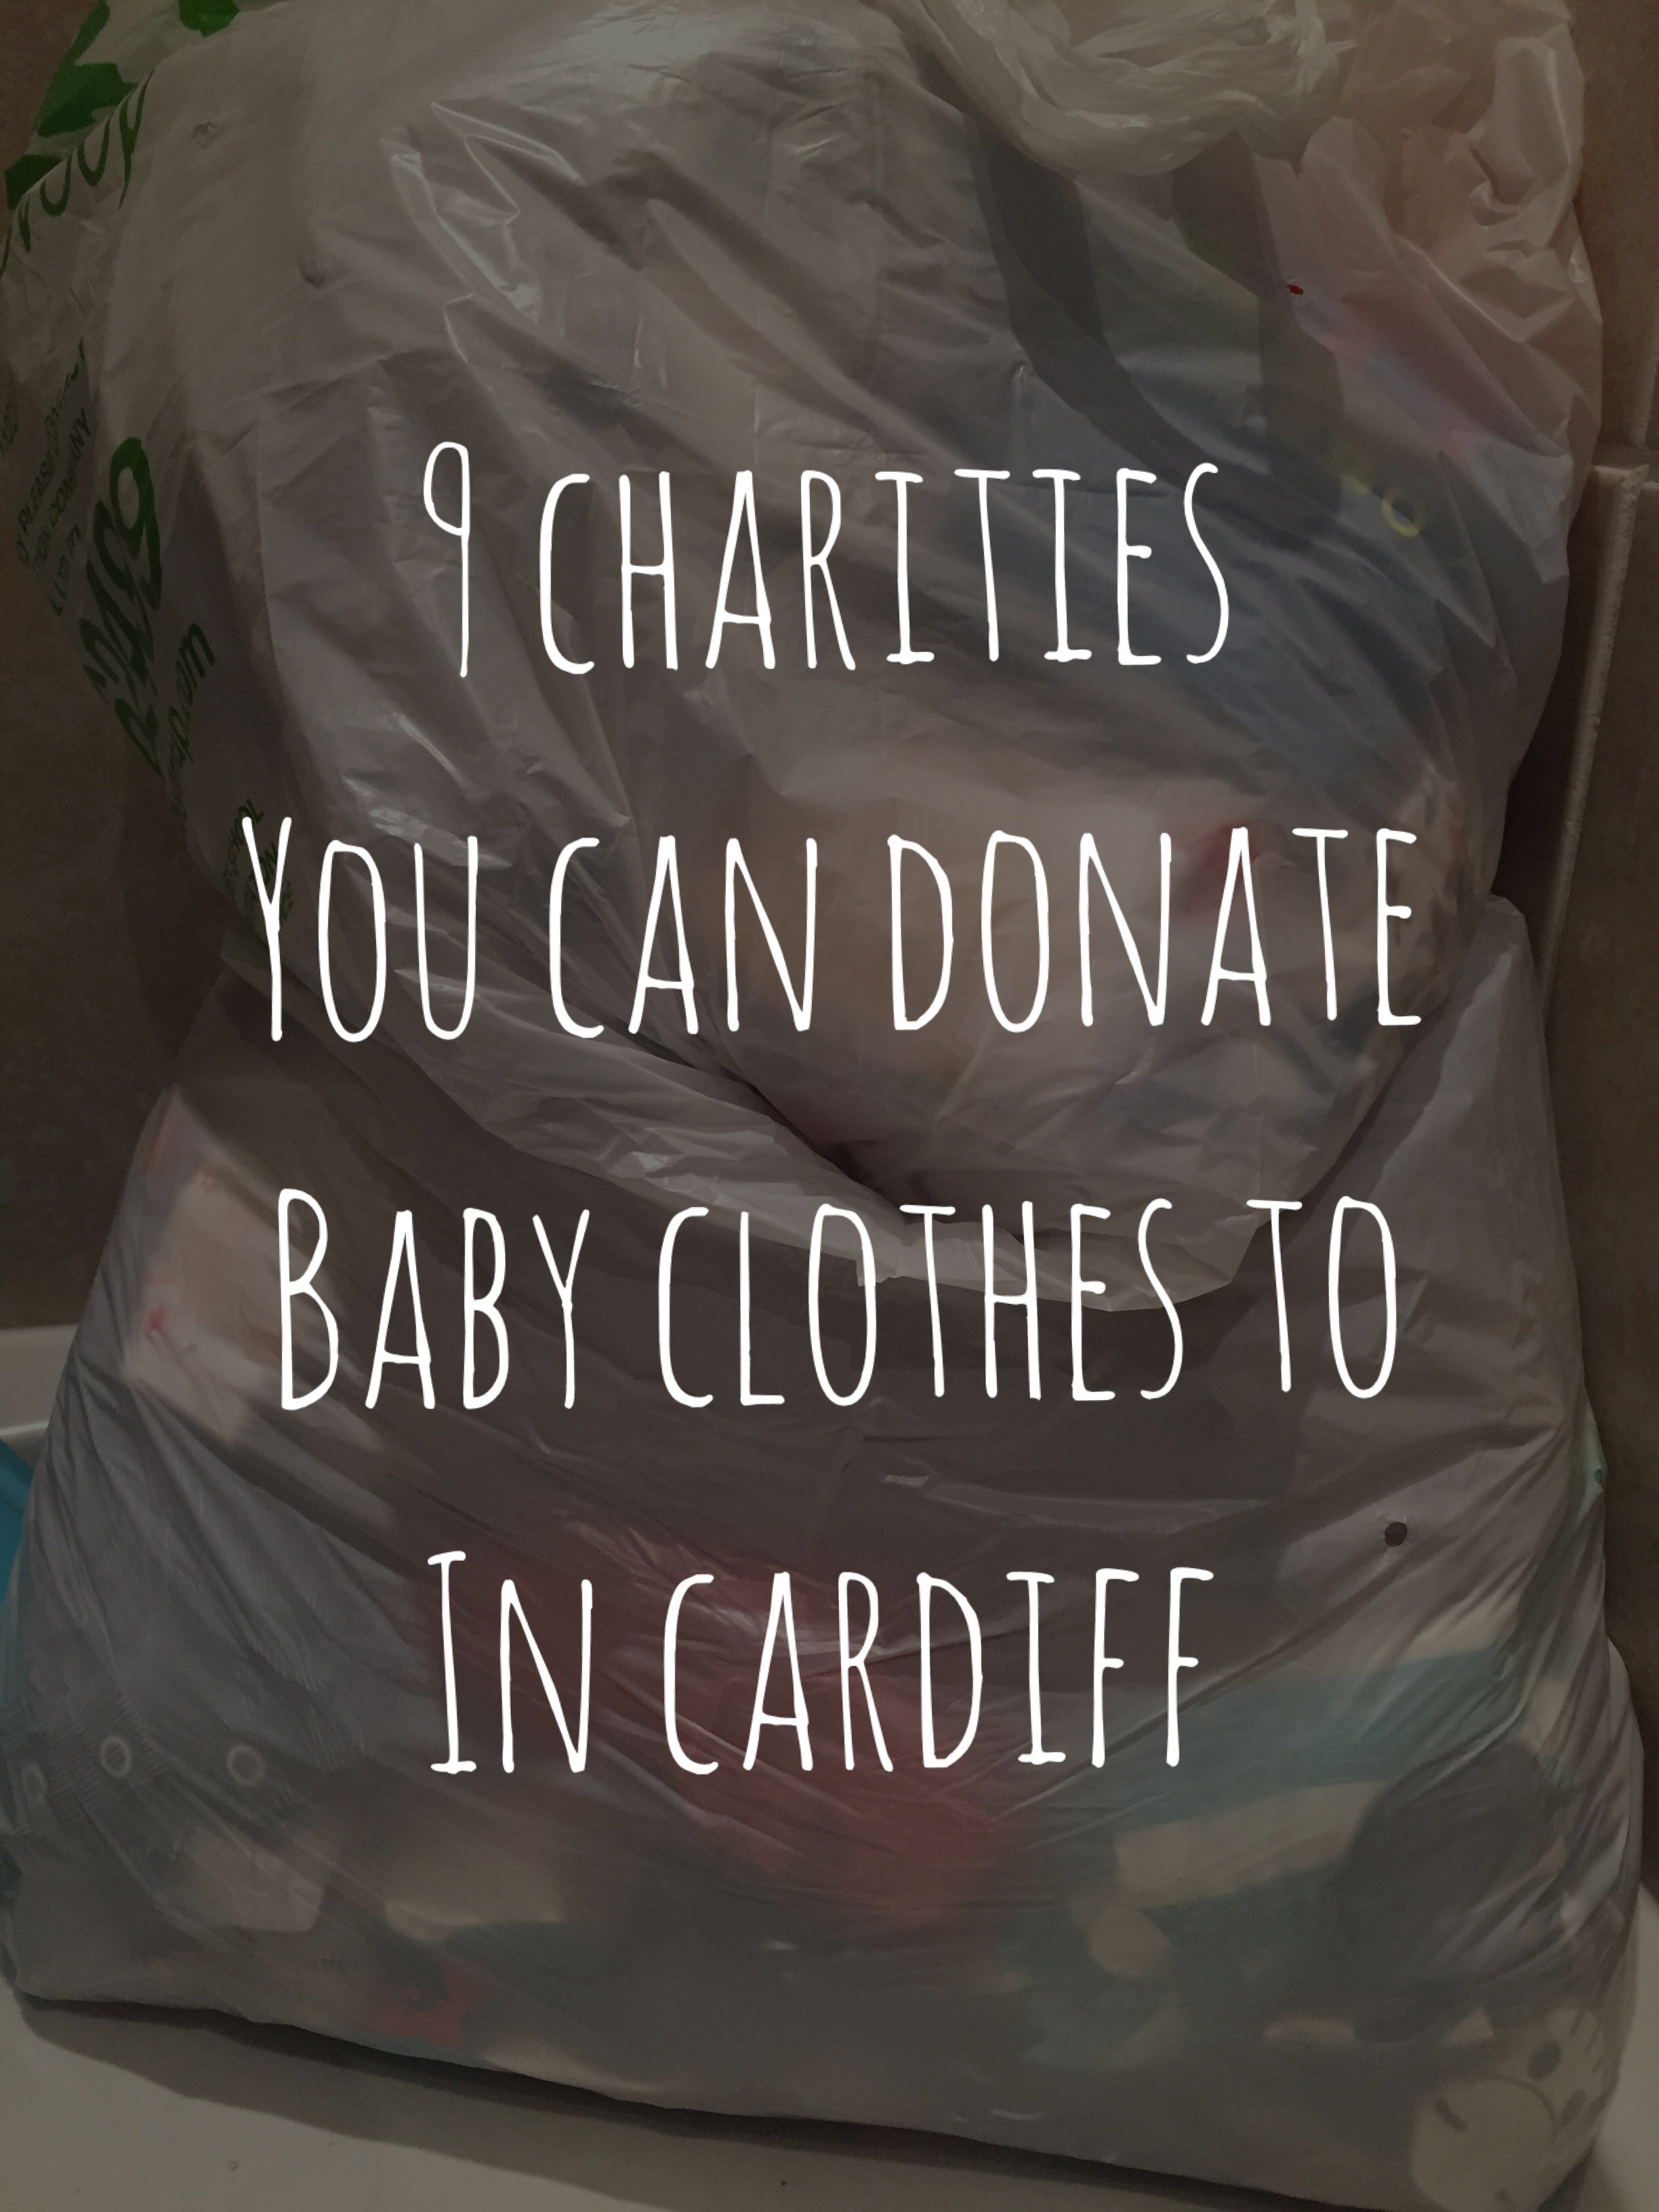 9 Charities You Can Donate Baby Clothes And Other Stuff To In